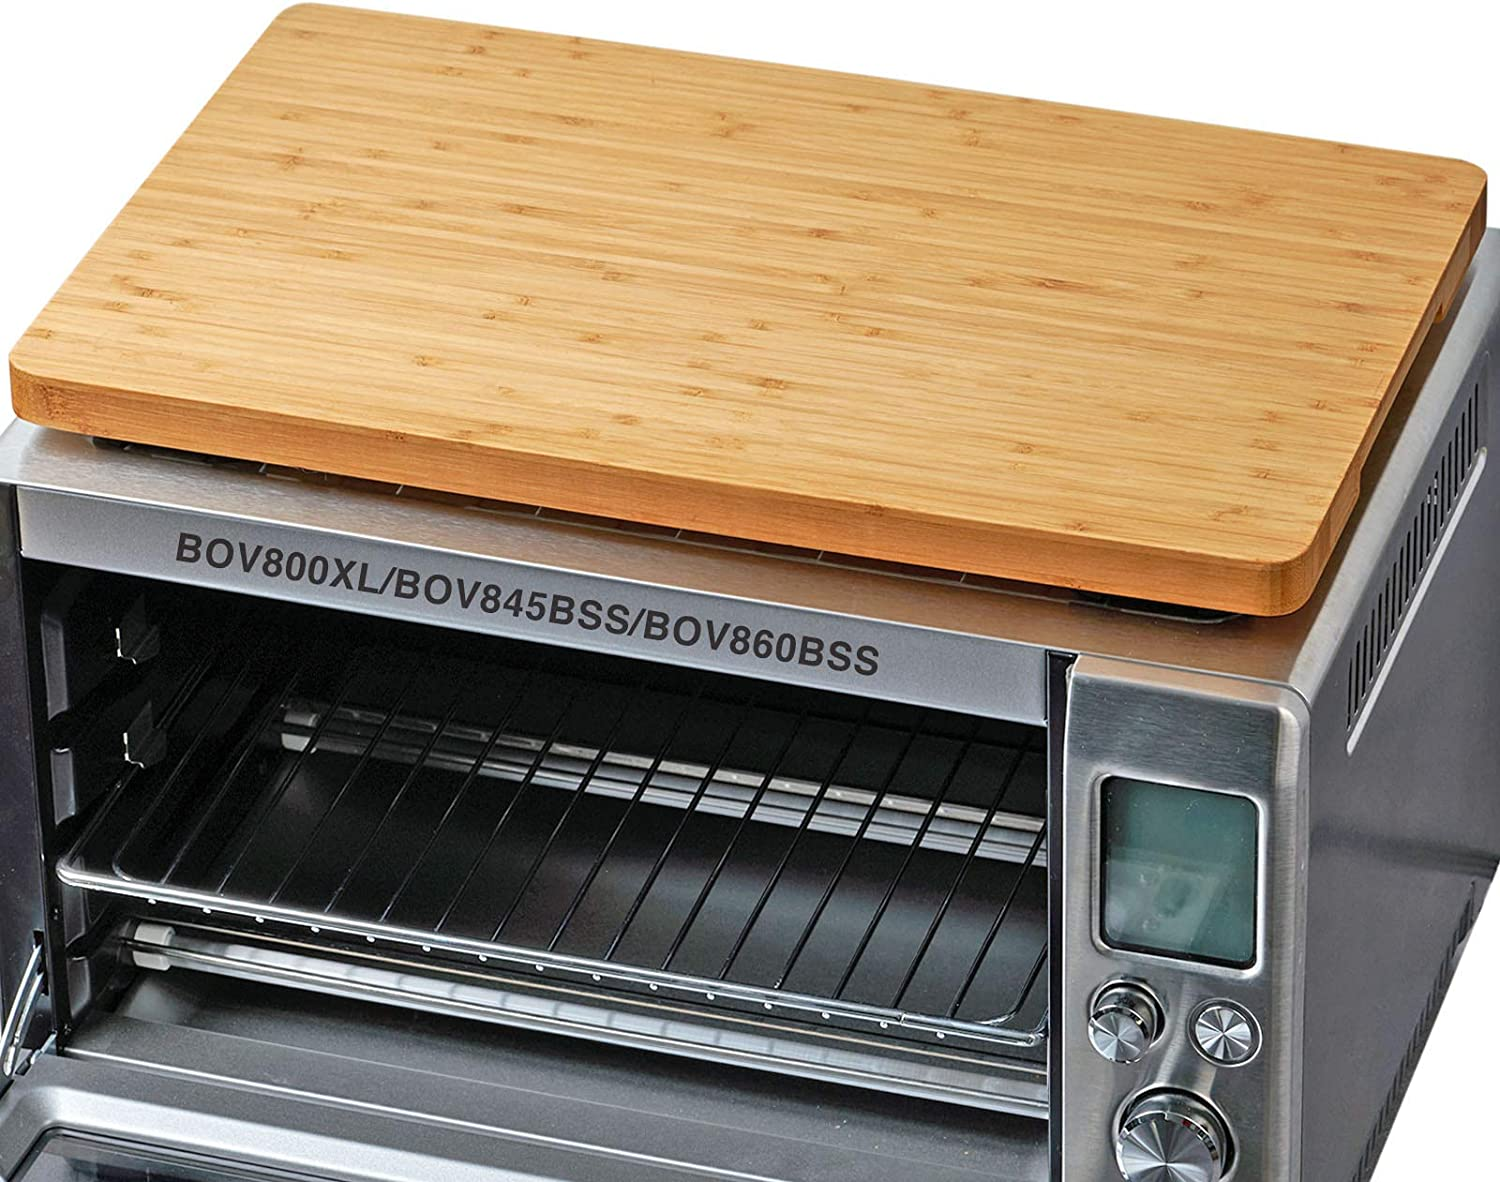 """Cutting board for Toaster Smart Oven Pro Air Fryer, Compatible with Breville BOV800XL/BOV845BSS/BOV860BSS, with Heat Resistant Silicone Feet, Creates Storage Room and Protects Cabinets, 17.8x10.8"""""""